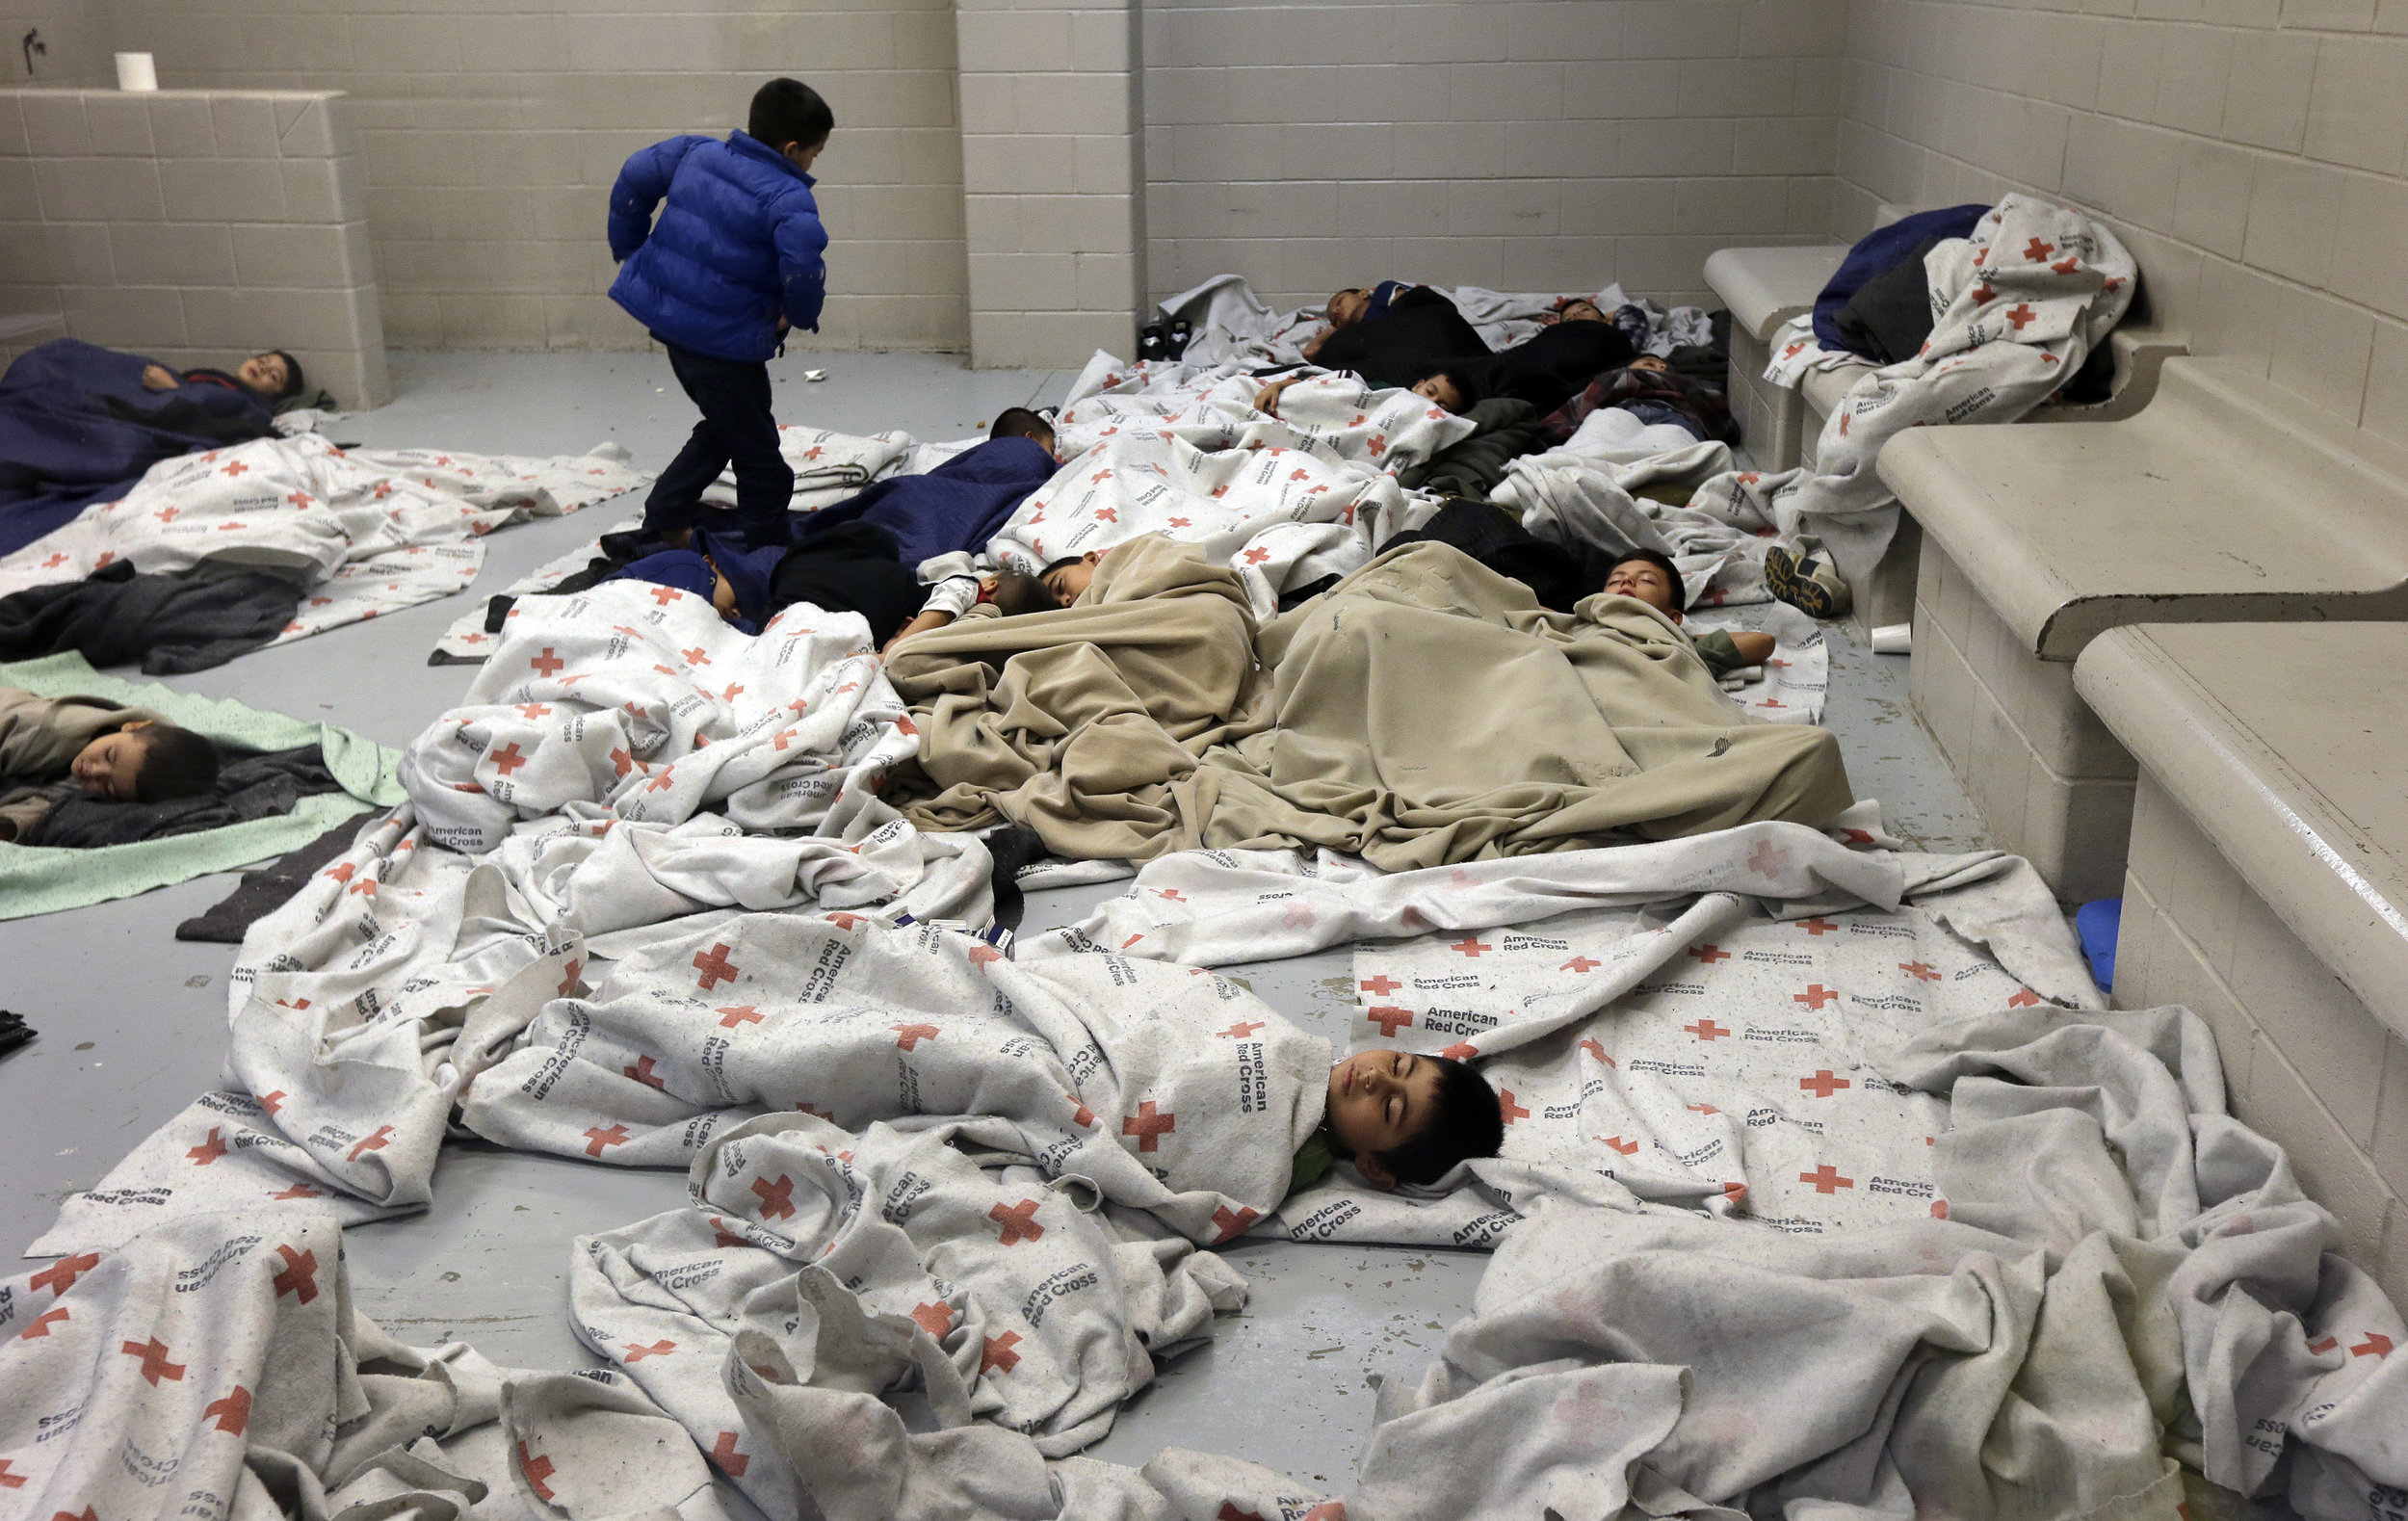 Immigrant children crammed into cells… and what next…?